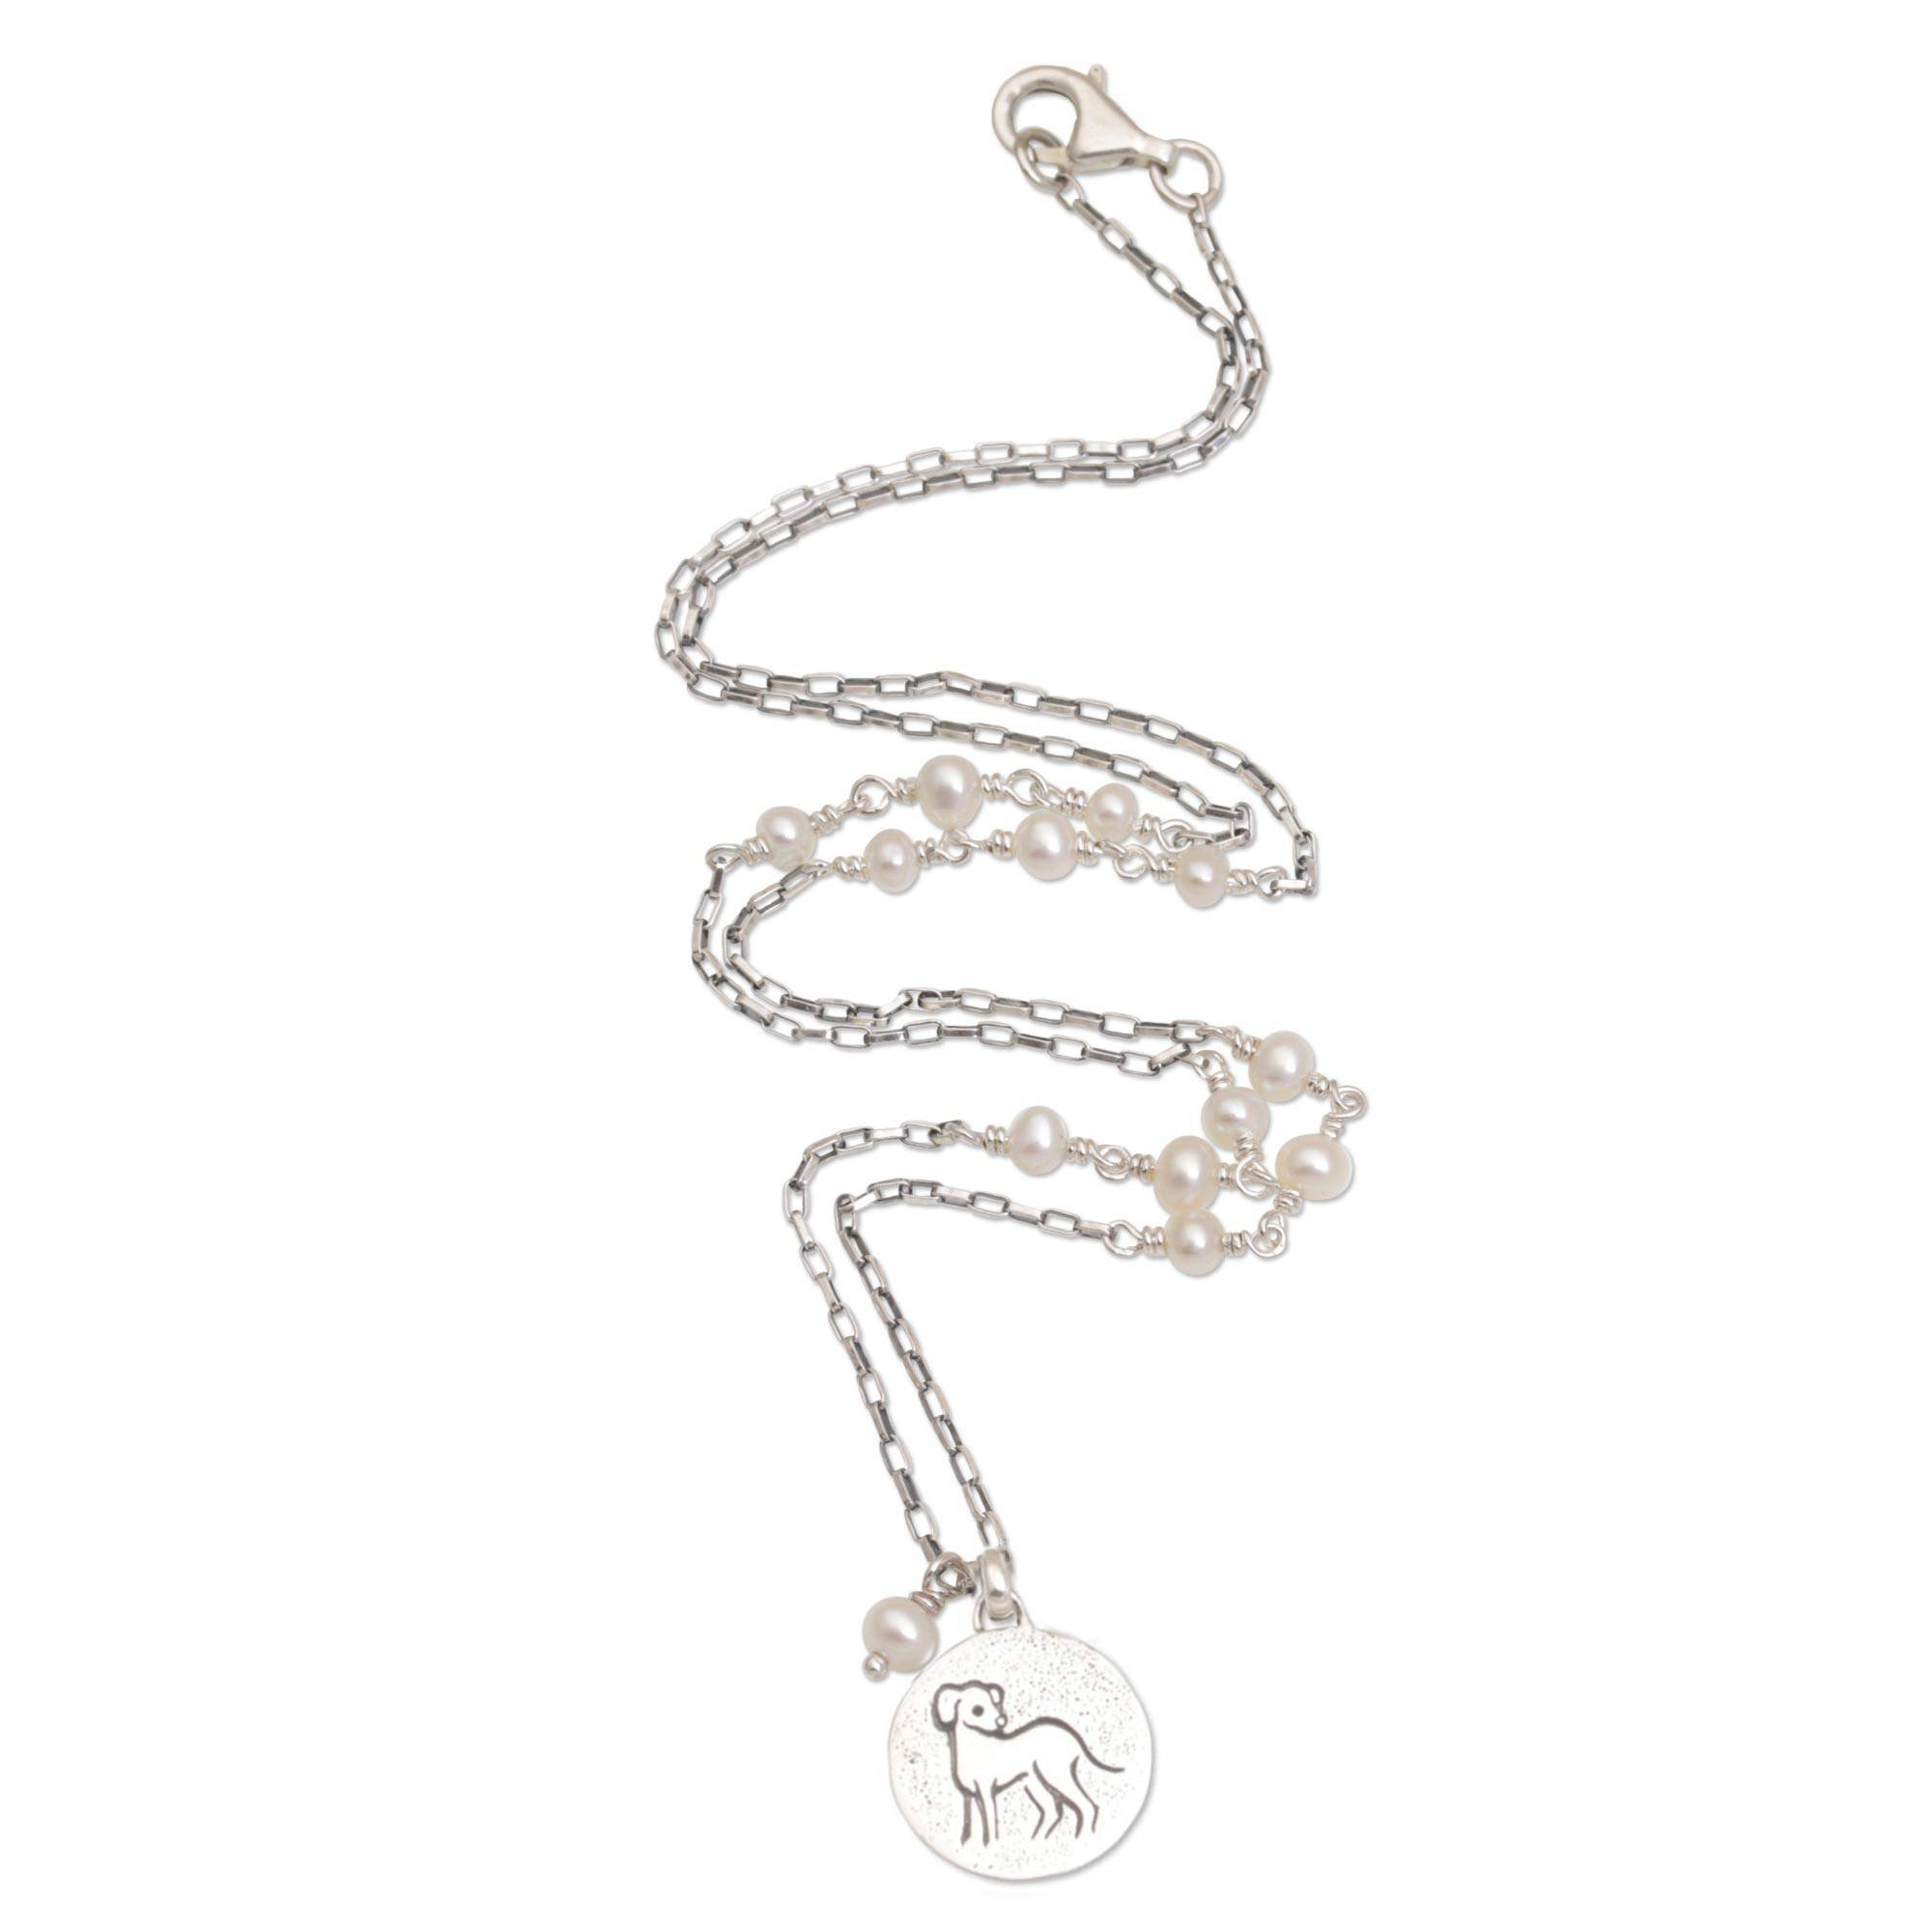 NOVICA Silver White Cultured Freshwater Pearl .925 Silver Necklace, 17.25'', Happy Dog'